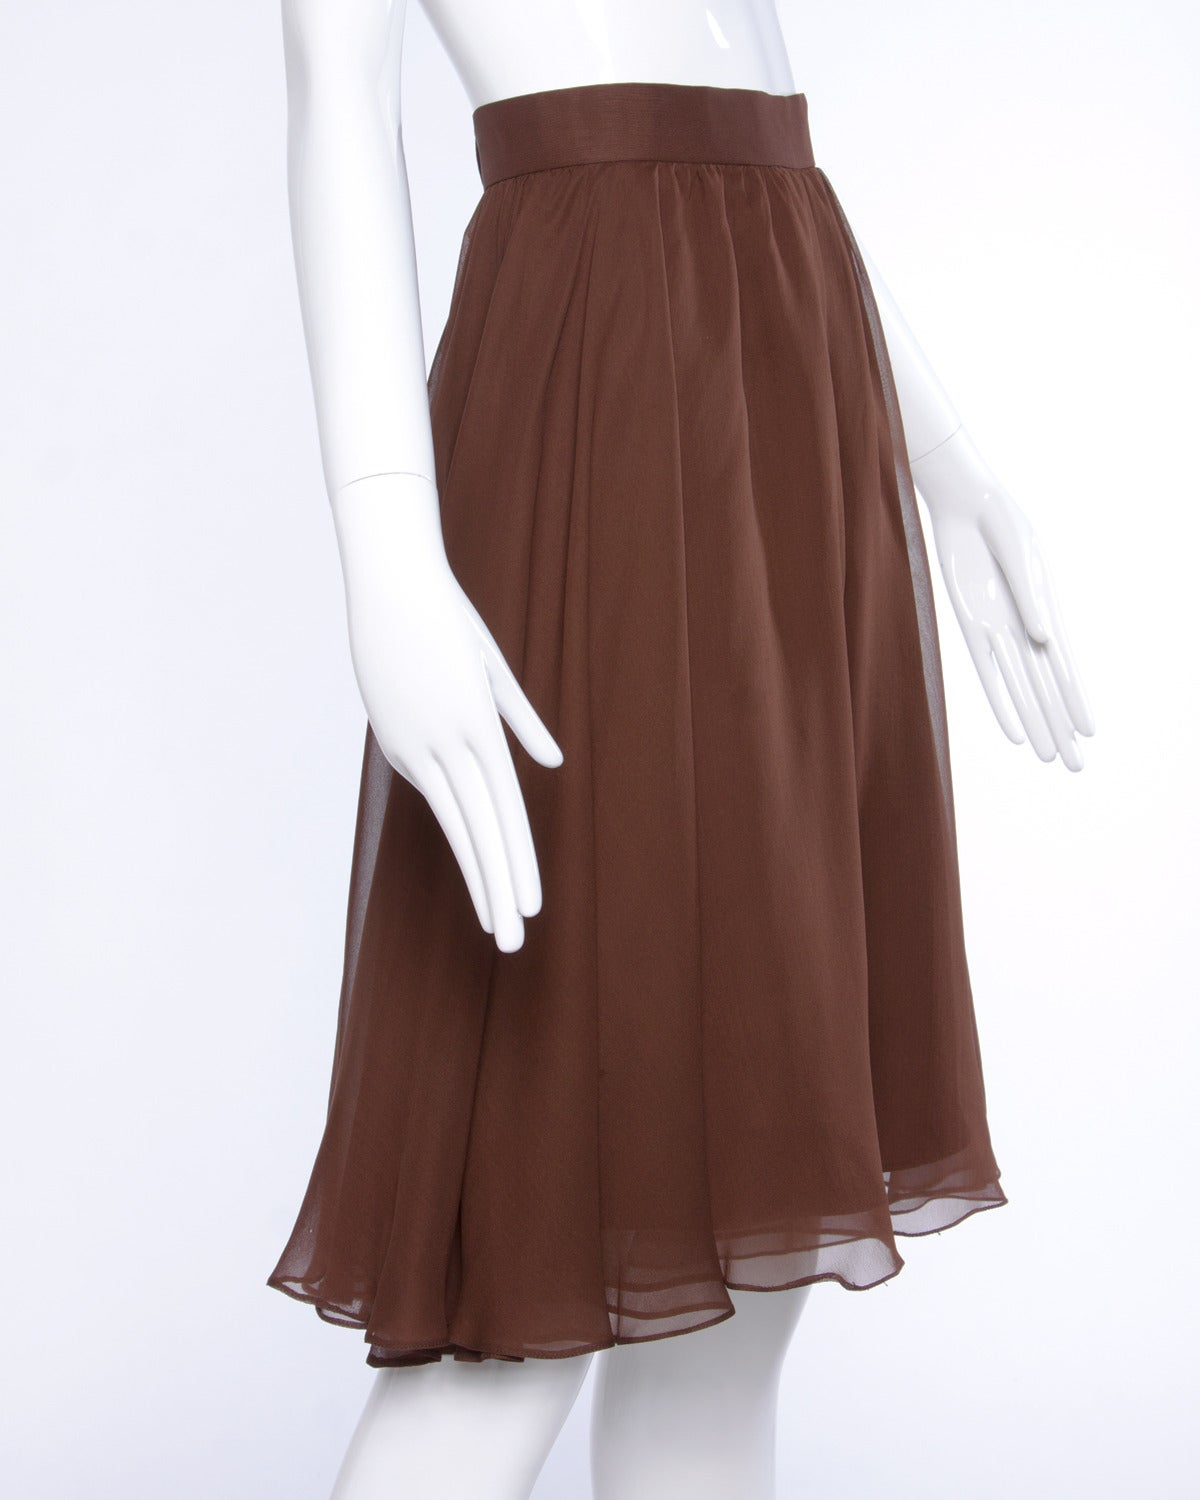 Carolina Herrera Vintage Brown Silk Chiffon Wide Leg Shorts/ Skirt 2